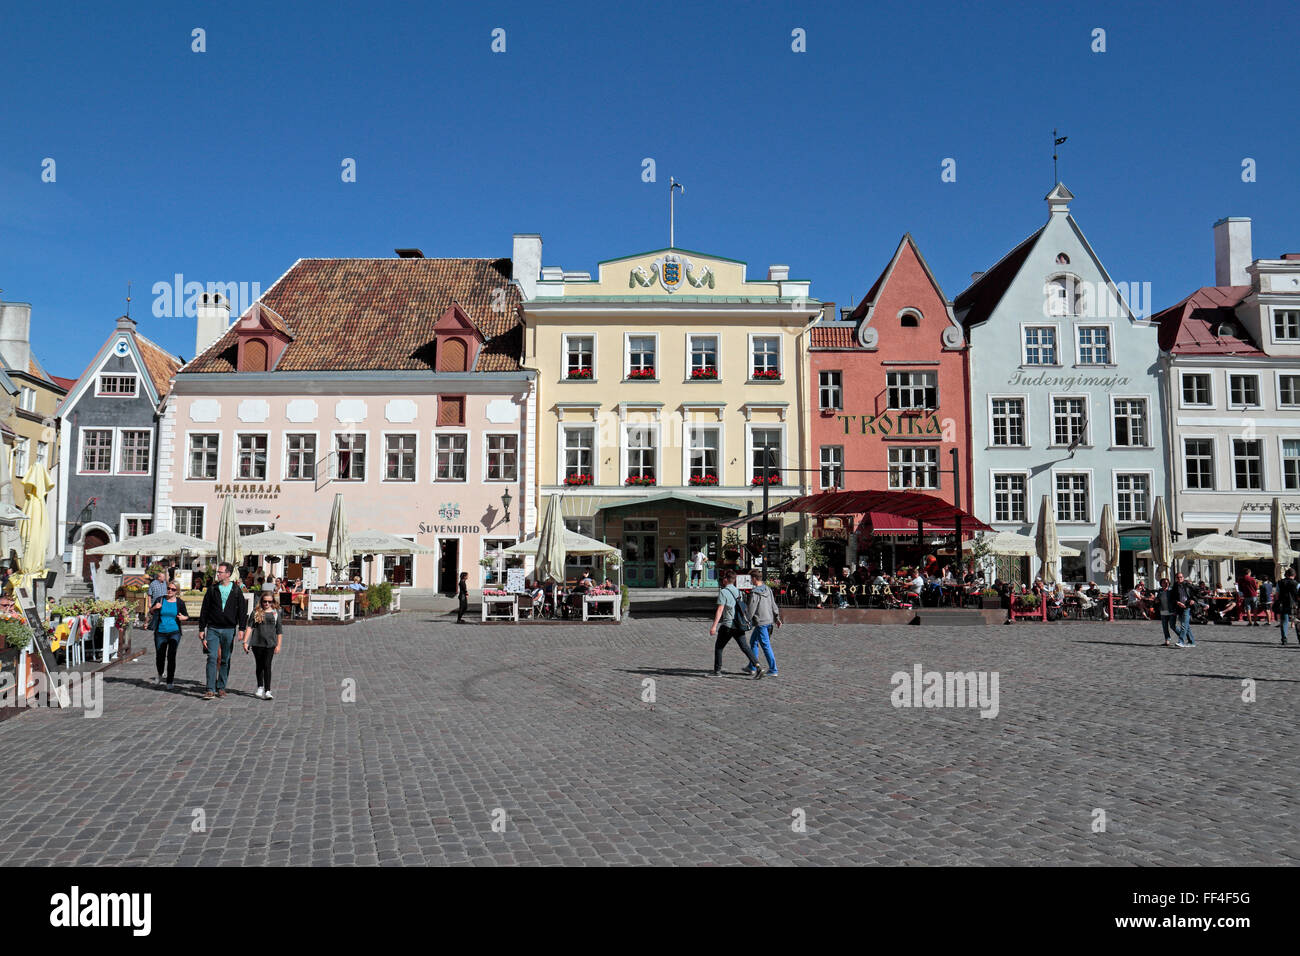 The historic and beautiful Town Hall Square (Raekoja plats) in Tallinn, Estonia. - Stock Image